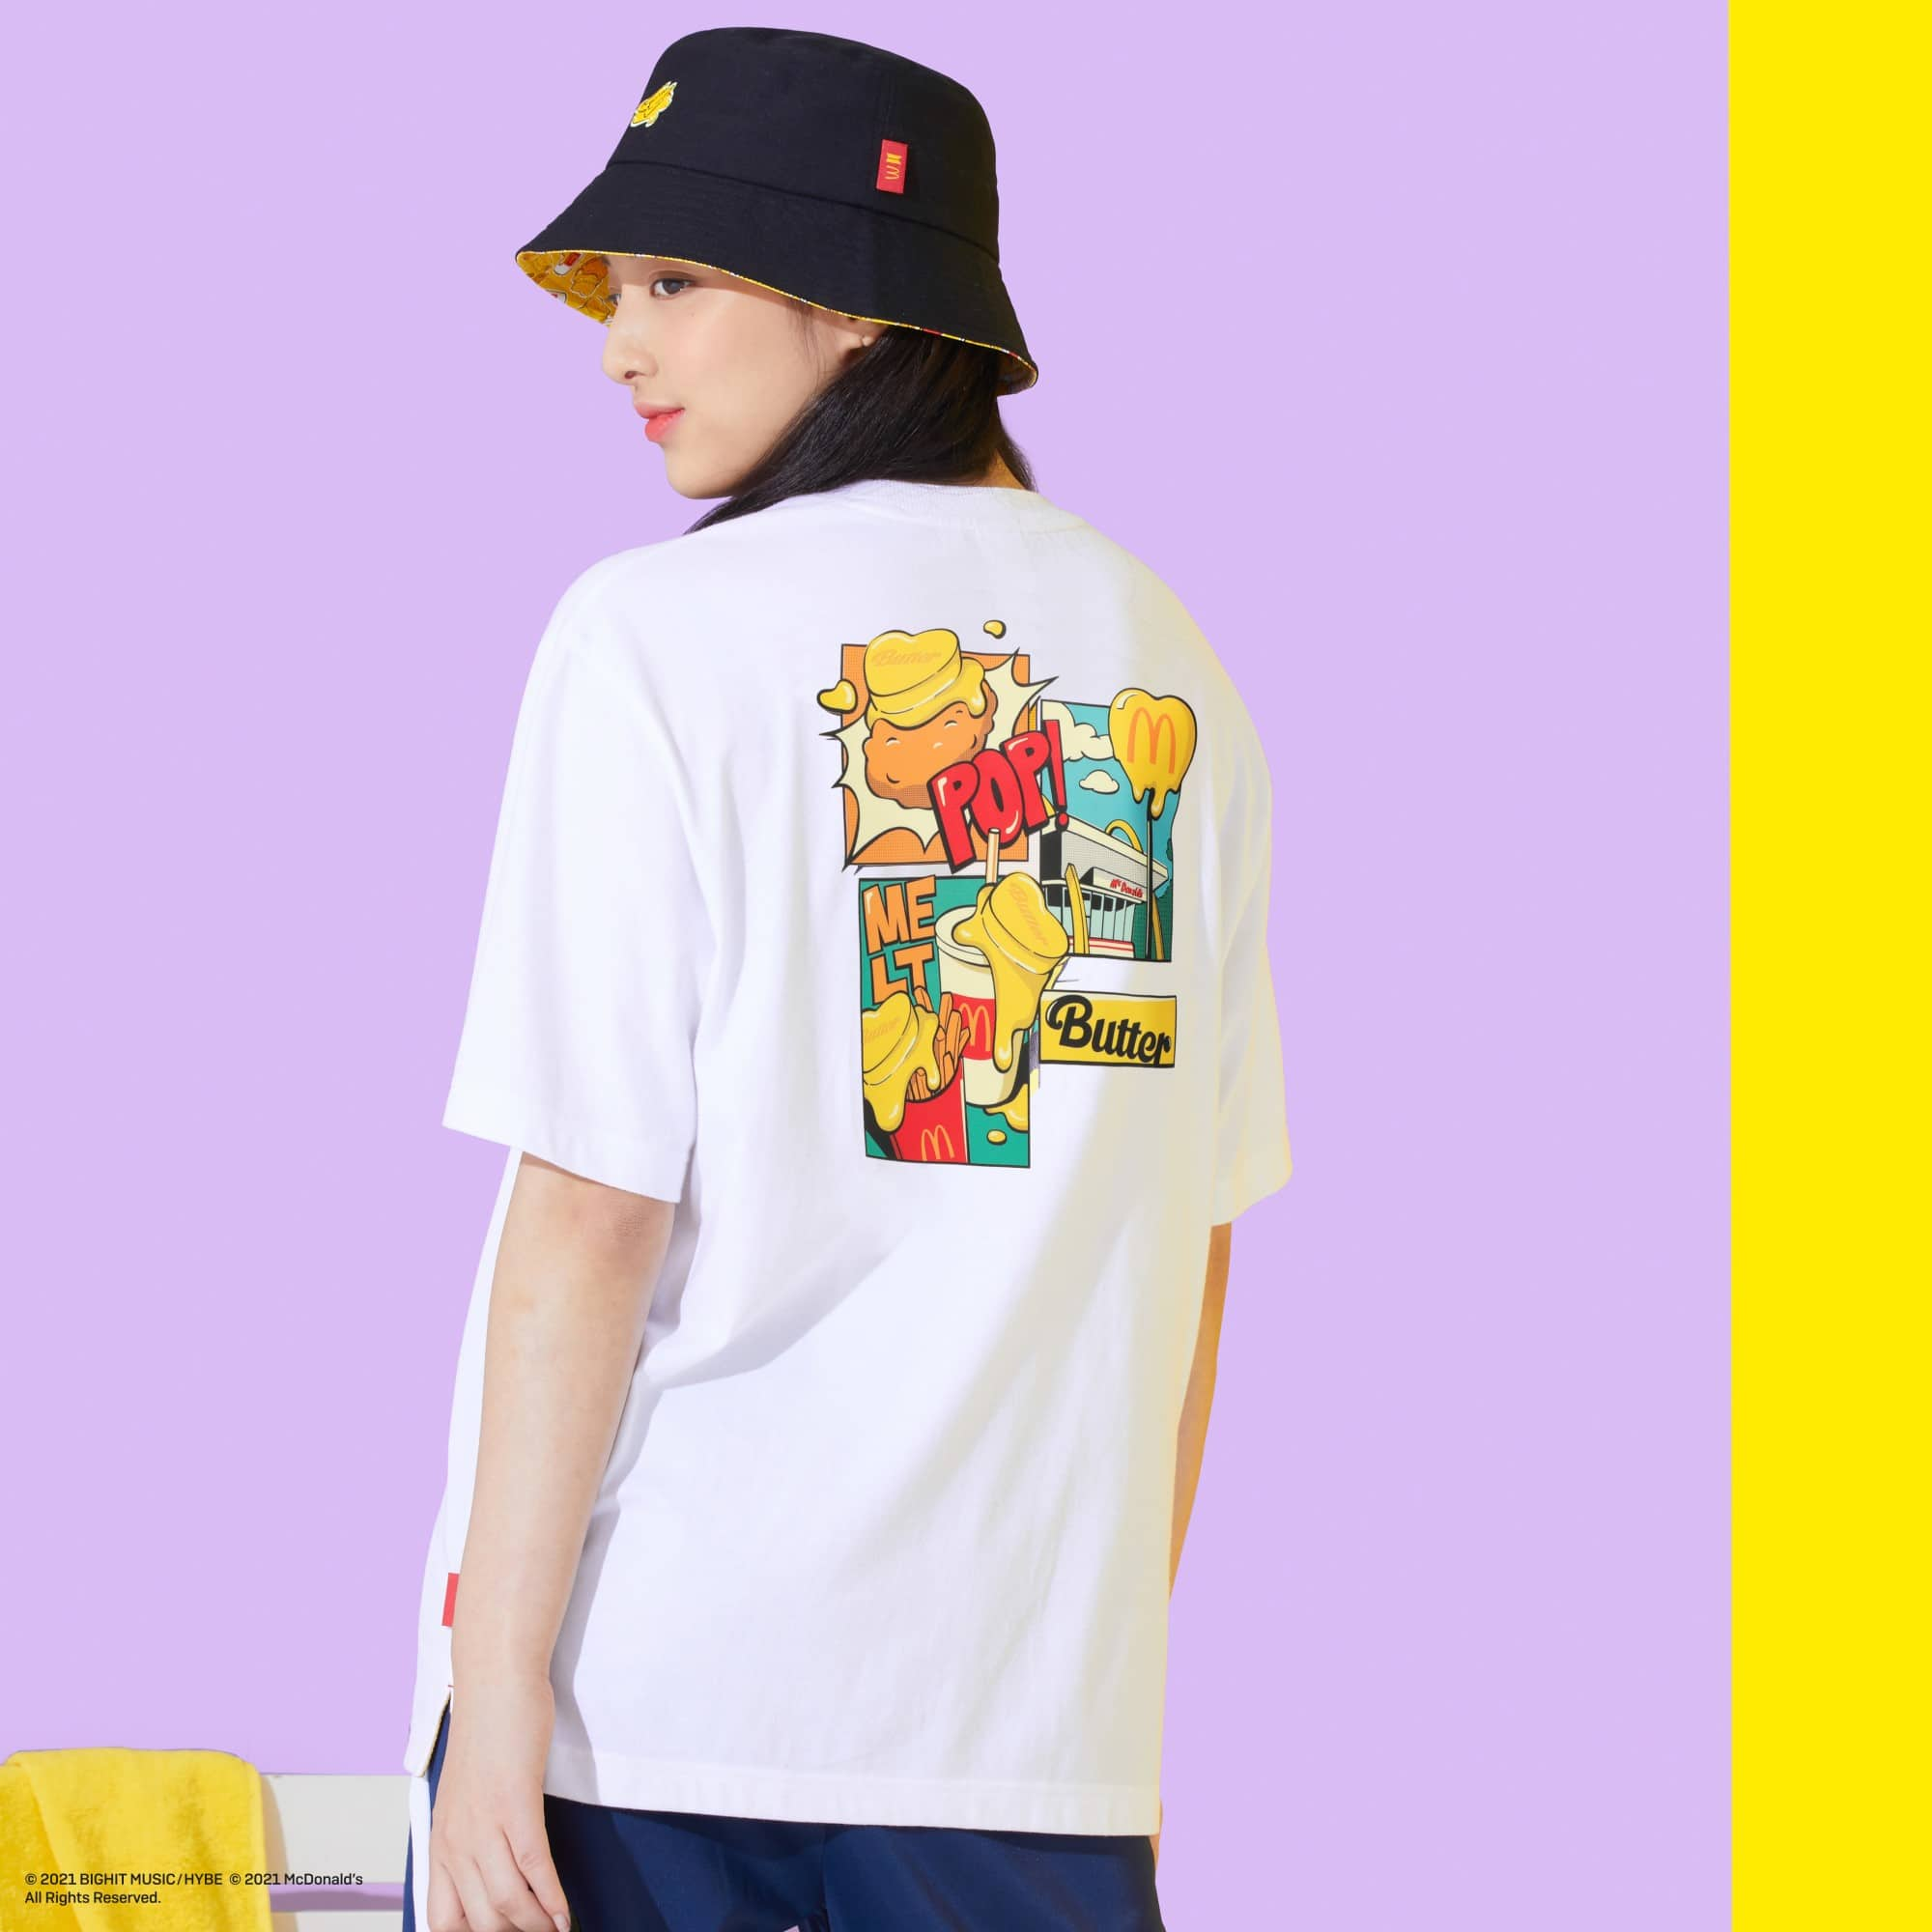 BTS x McDonald's collaboration continues with two new merch lines 16